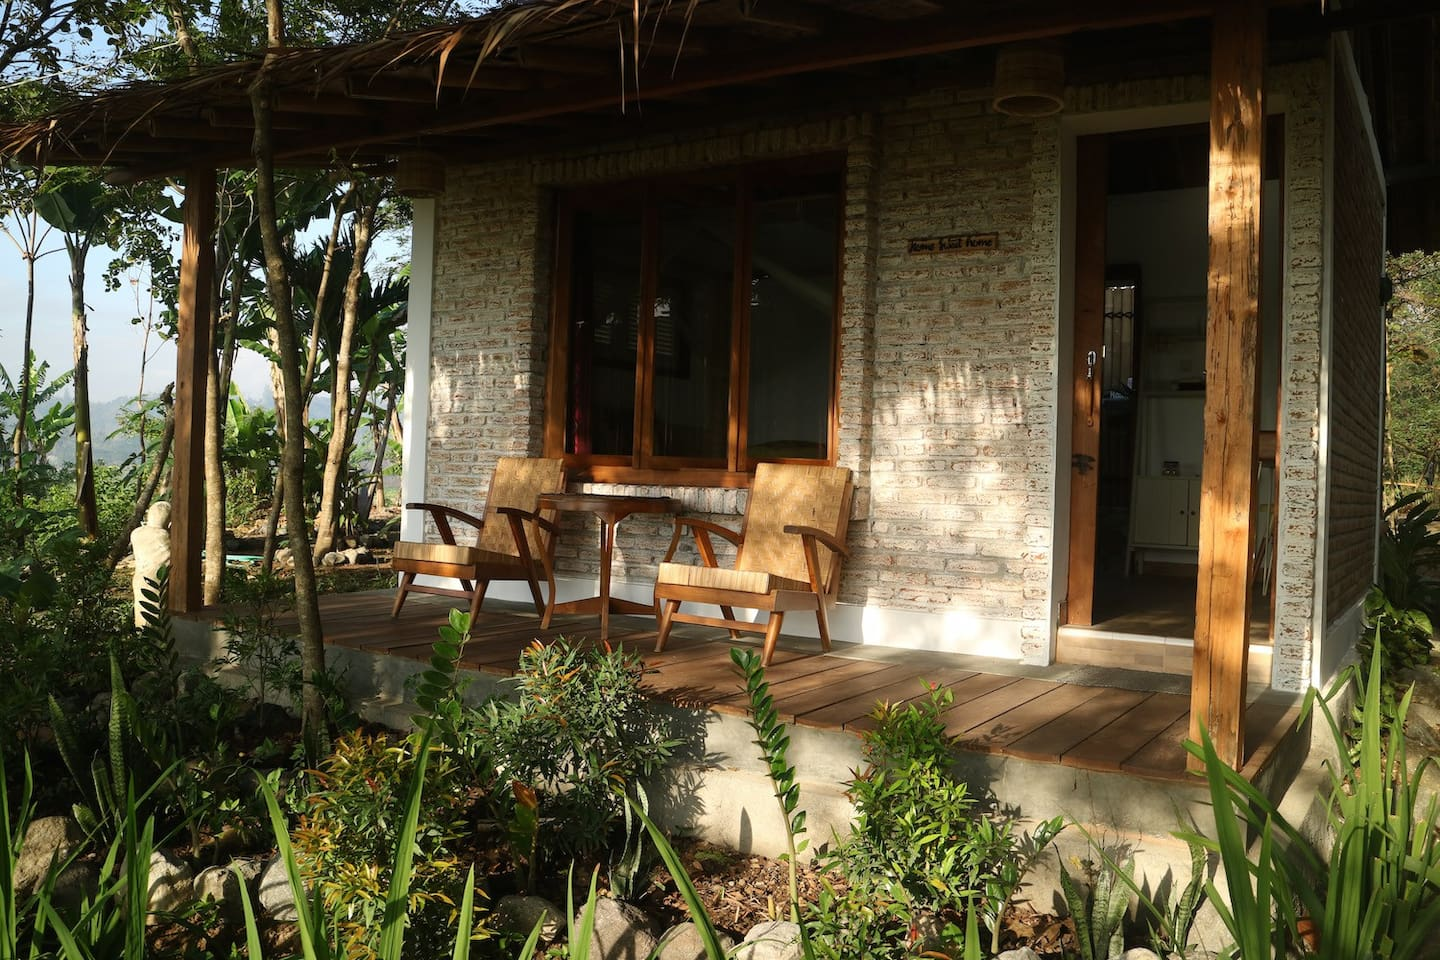 Sawah Breeze House in the morning light